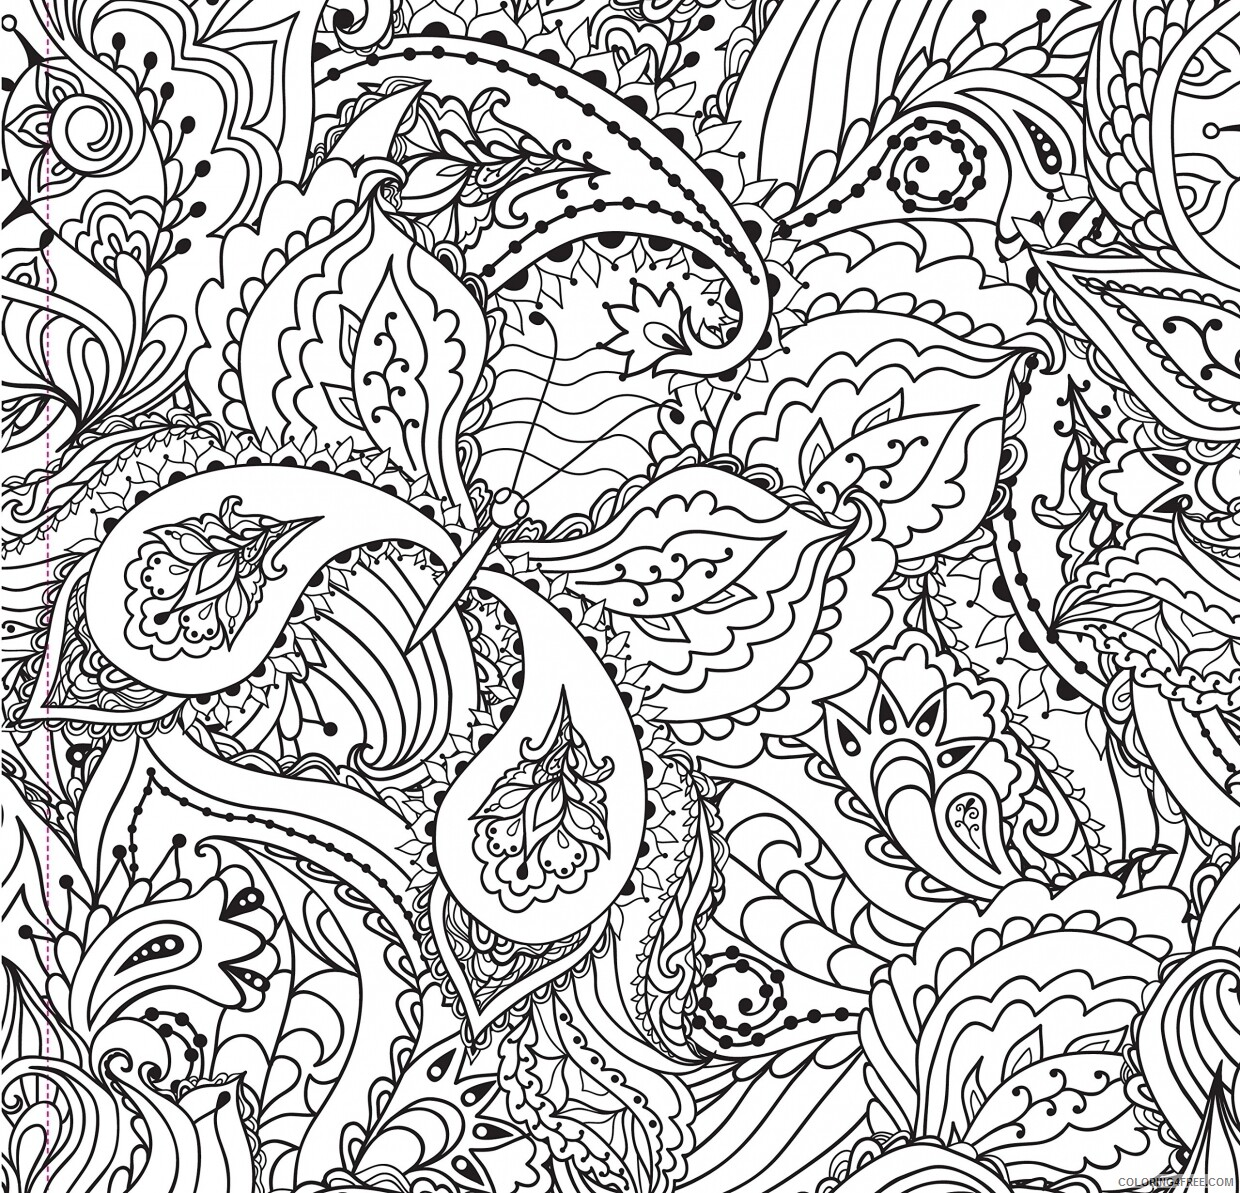 Complex Coloring Pages Adult Free for Adults and Teens Printable 2020 231 Coloring4free